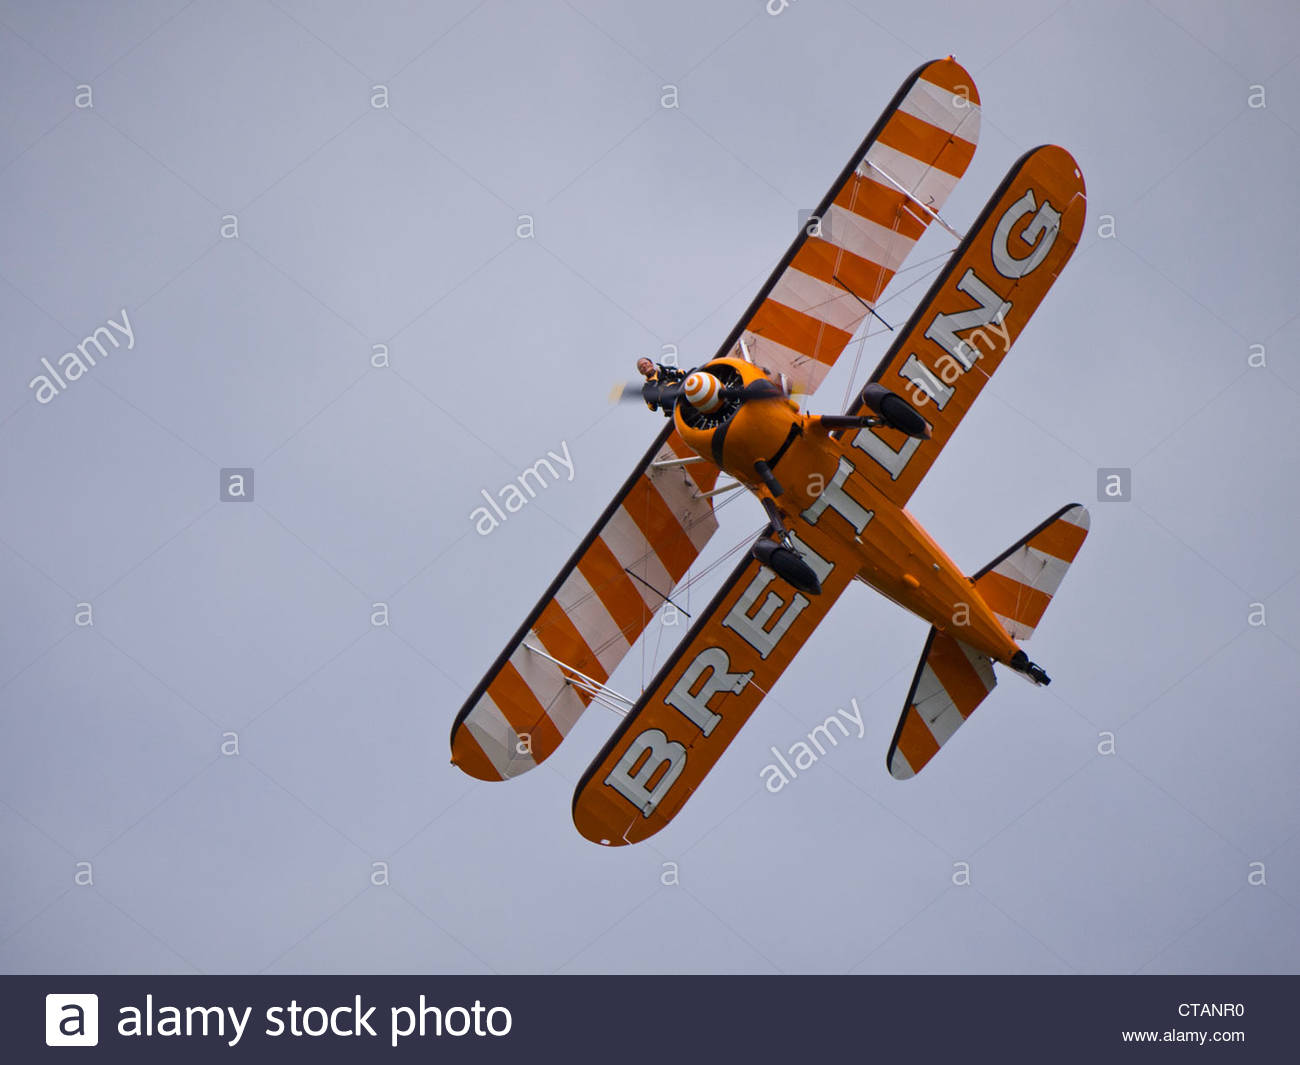 Single Breitling Wing Walkers looking down though Prop Farnborough 2012 - Stock Image